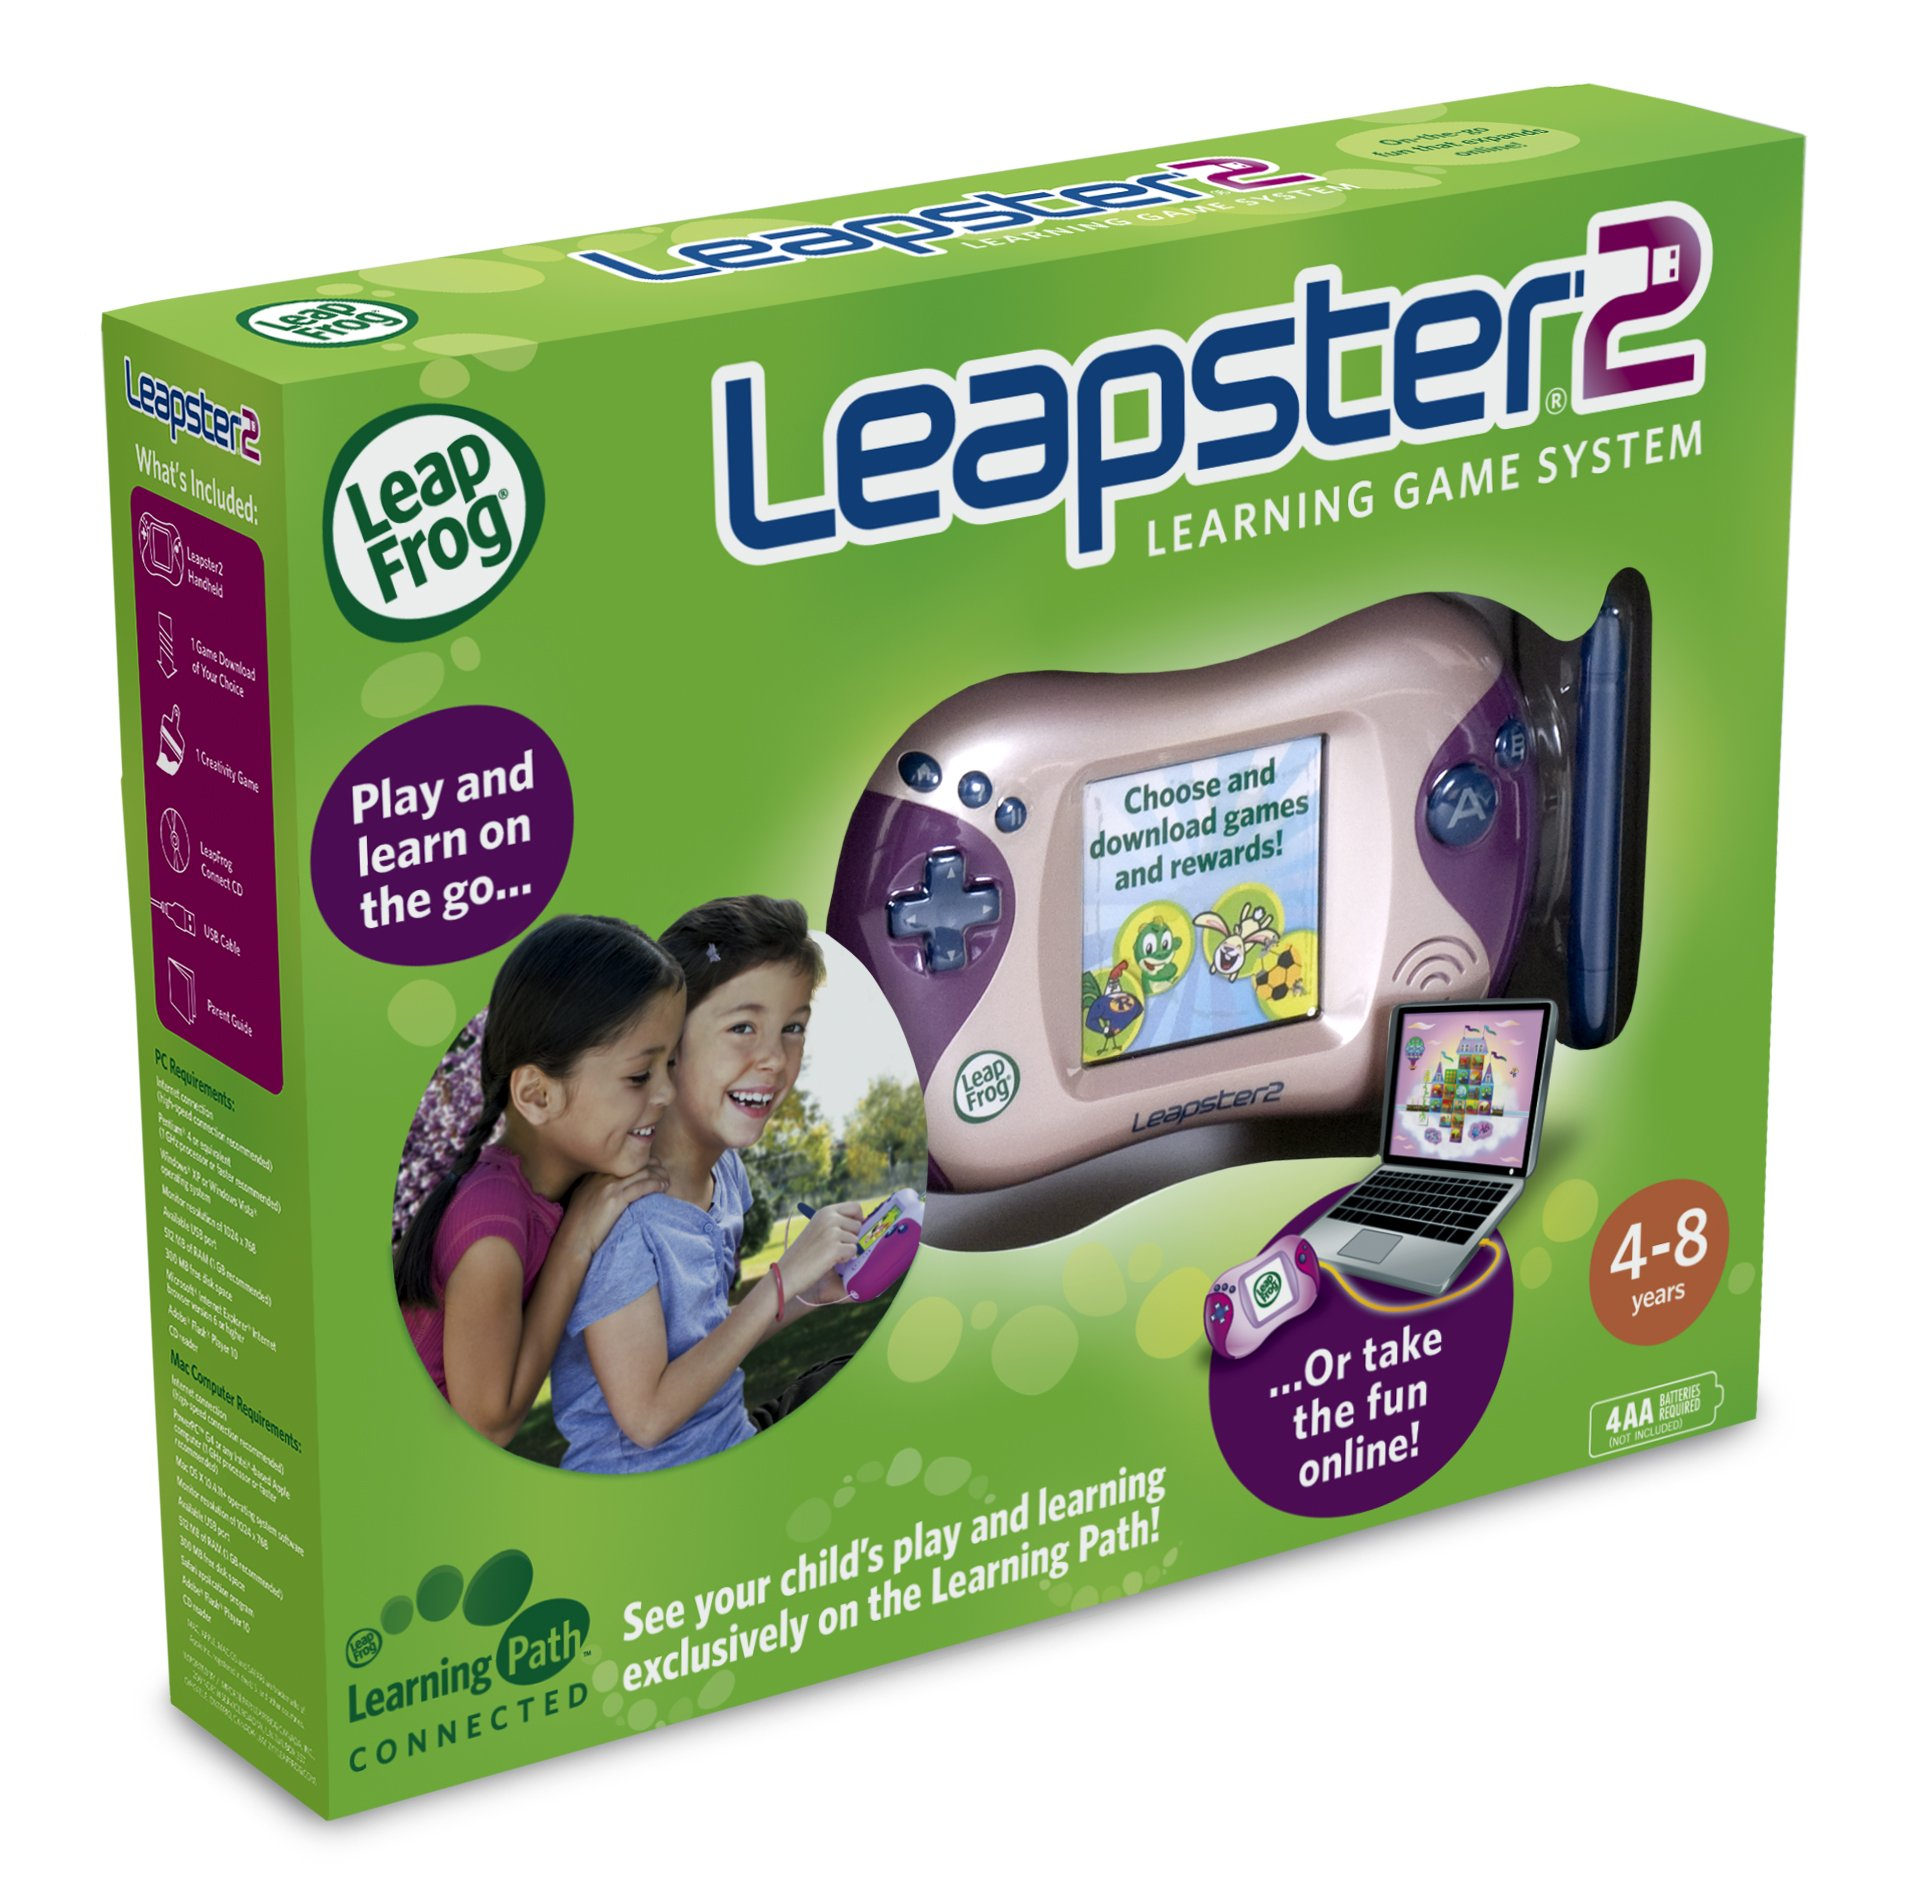 LeapFrog Leapster 2 Learning Game System - Pink by LeapFrog (Image #5)